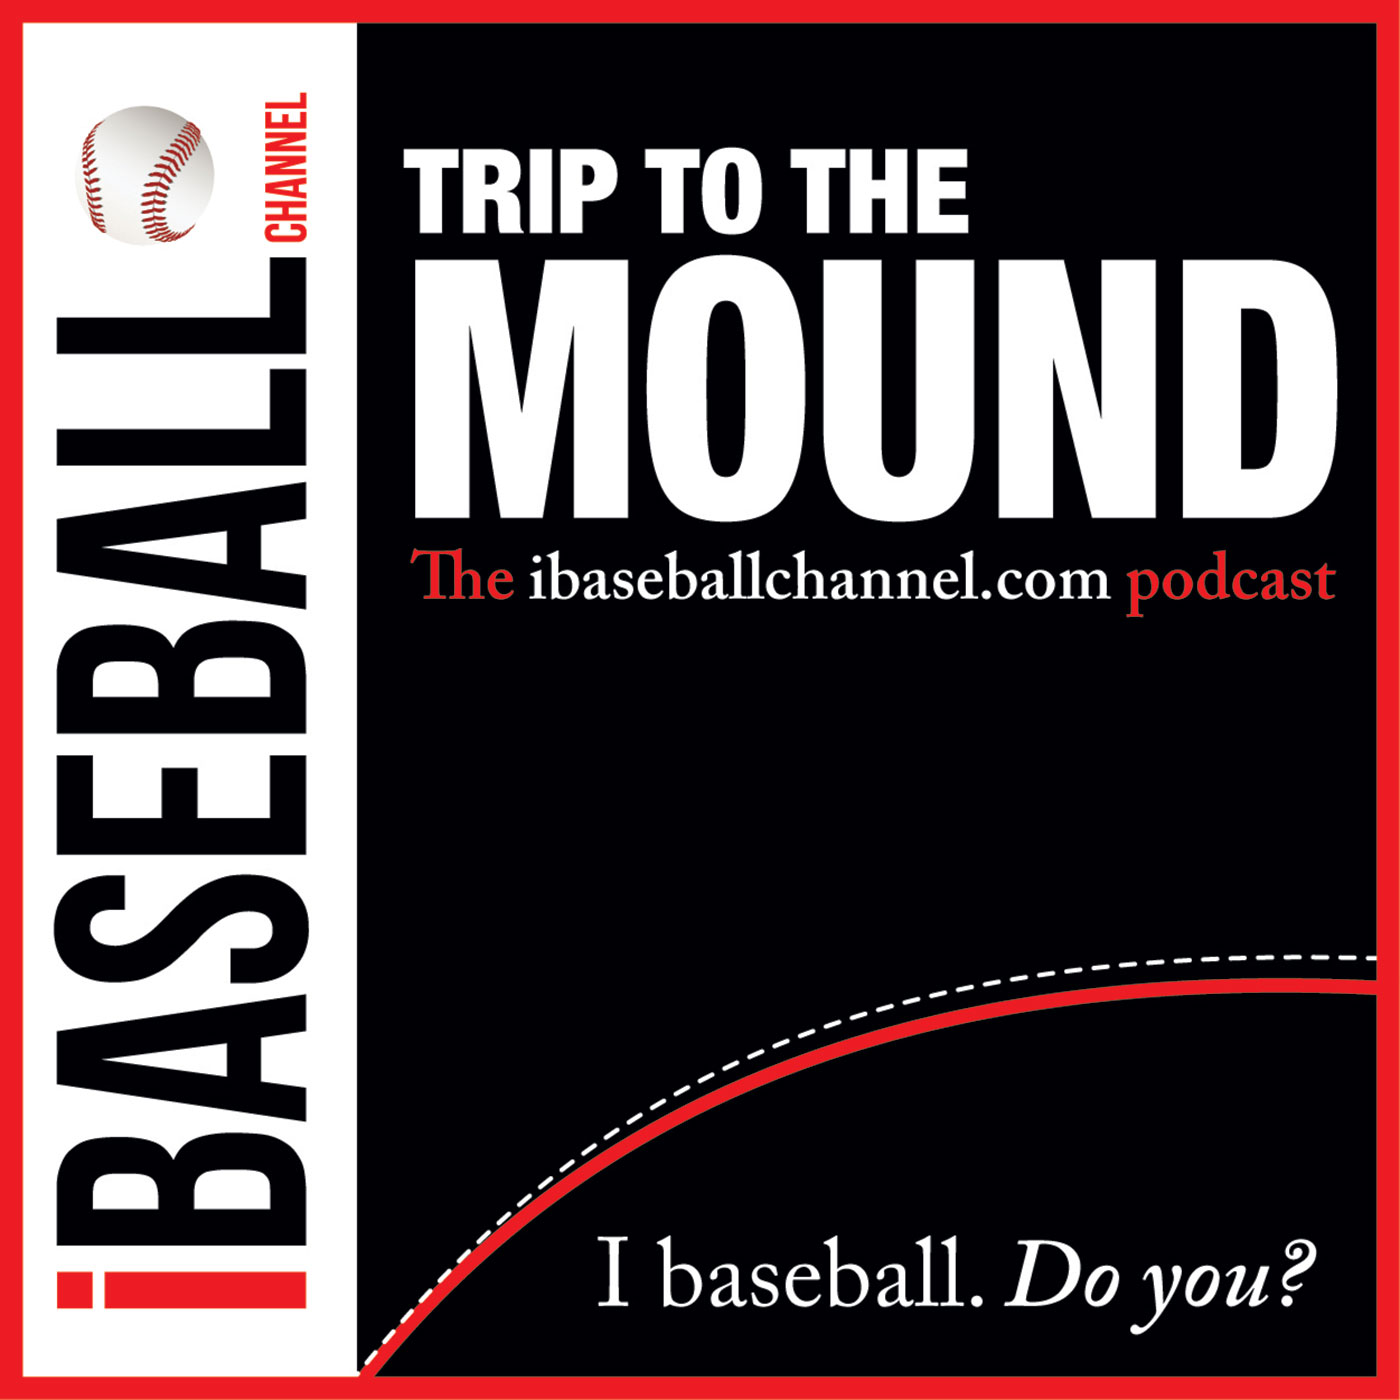 Trip to the Mound